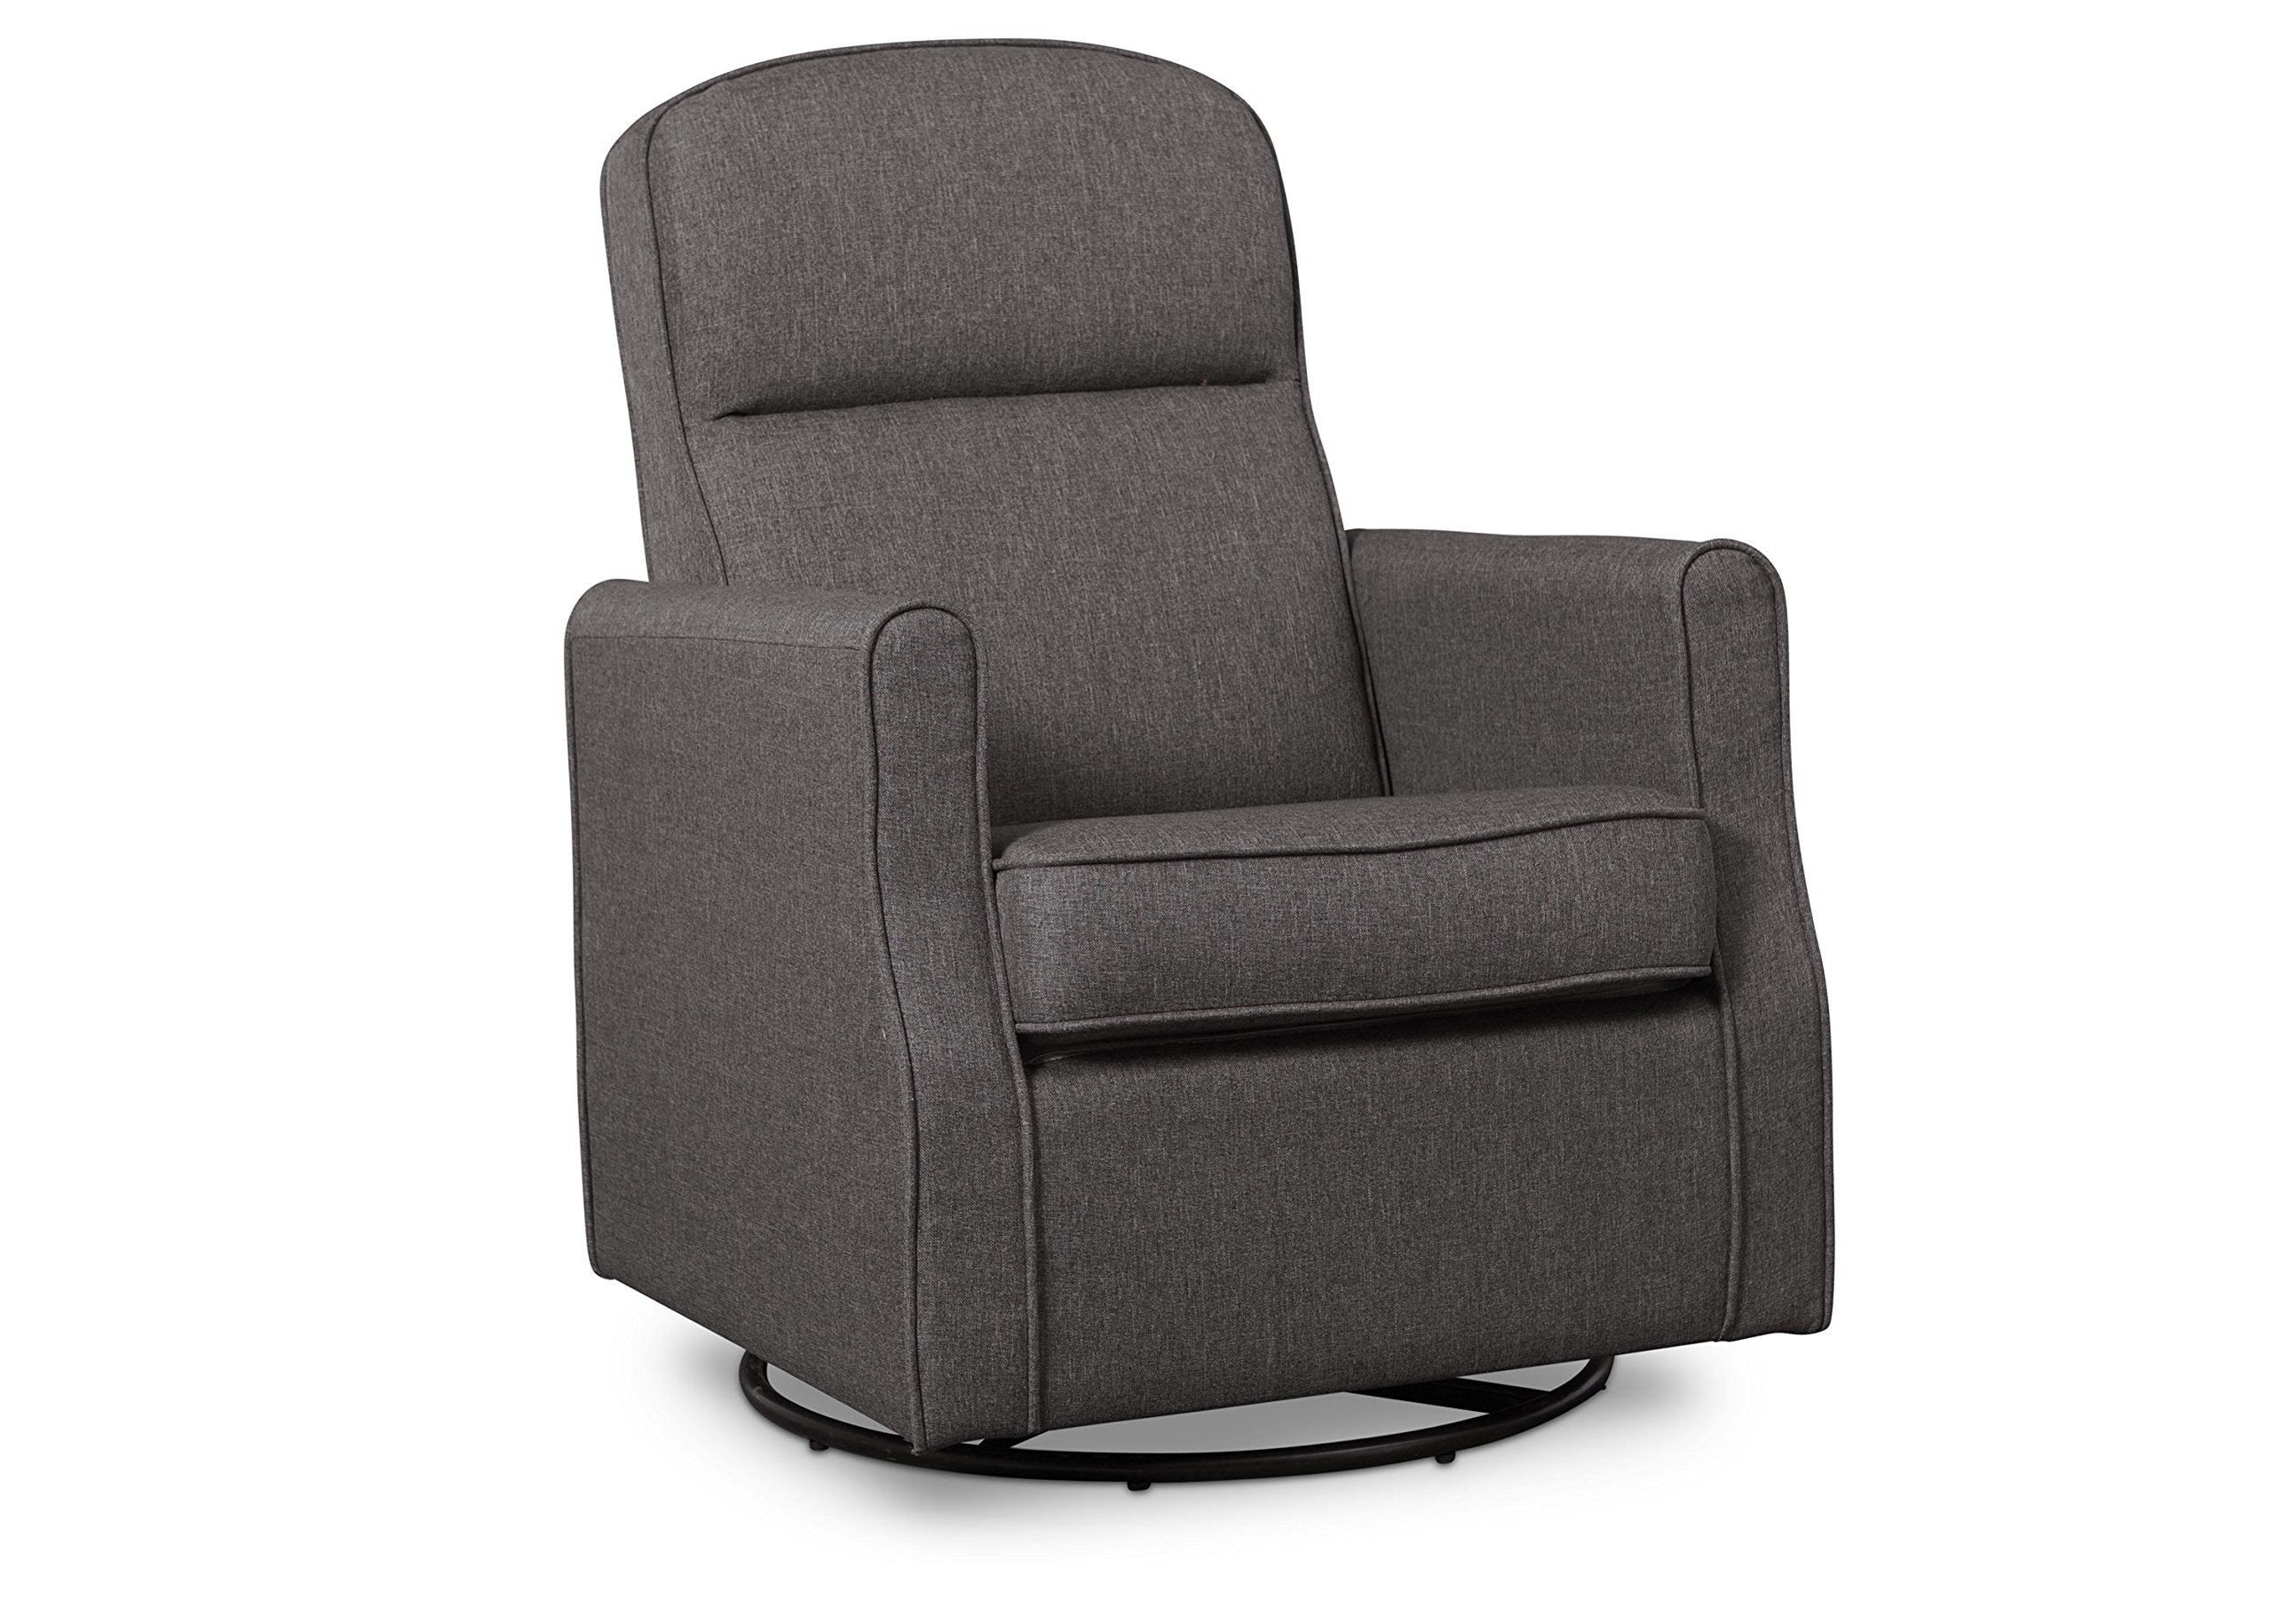 arm ralph by wolf bent furniture leg and gardiner chair klaussner reclining recliner high products